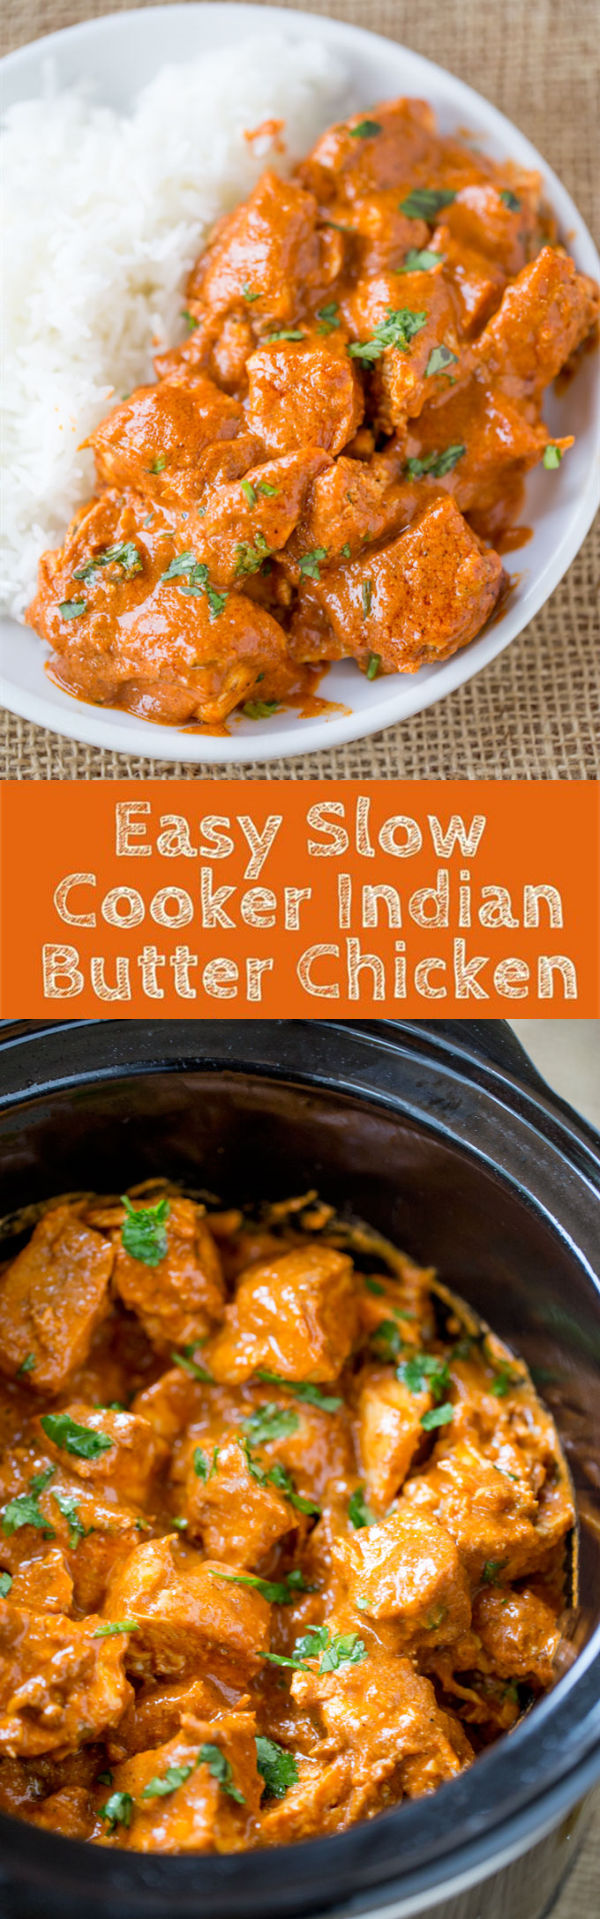 Slow Cooker Indian Butter Chicken - 30 Crock Pot Recipes that you have to try this year 2018 - Lieu.Tech